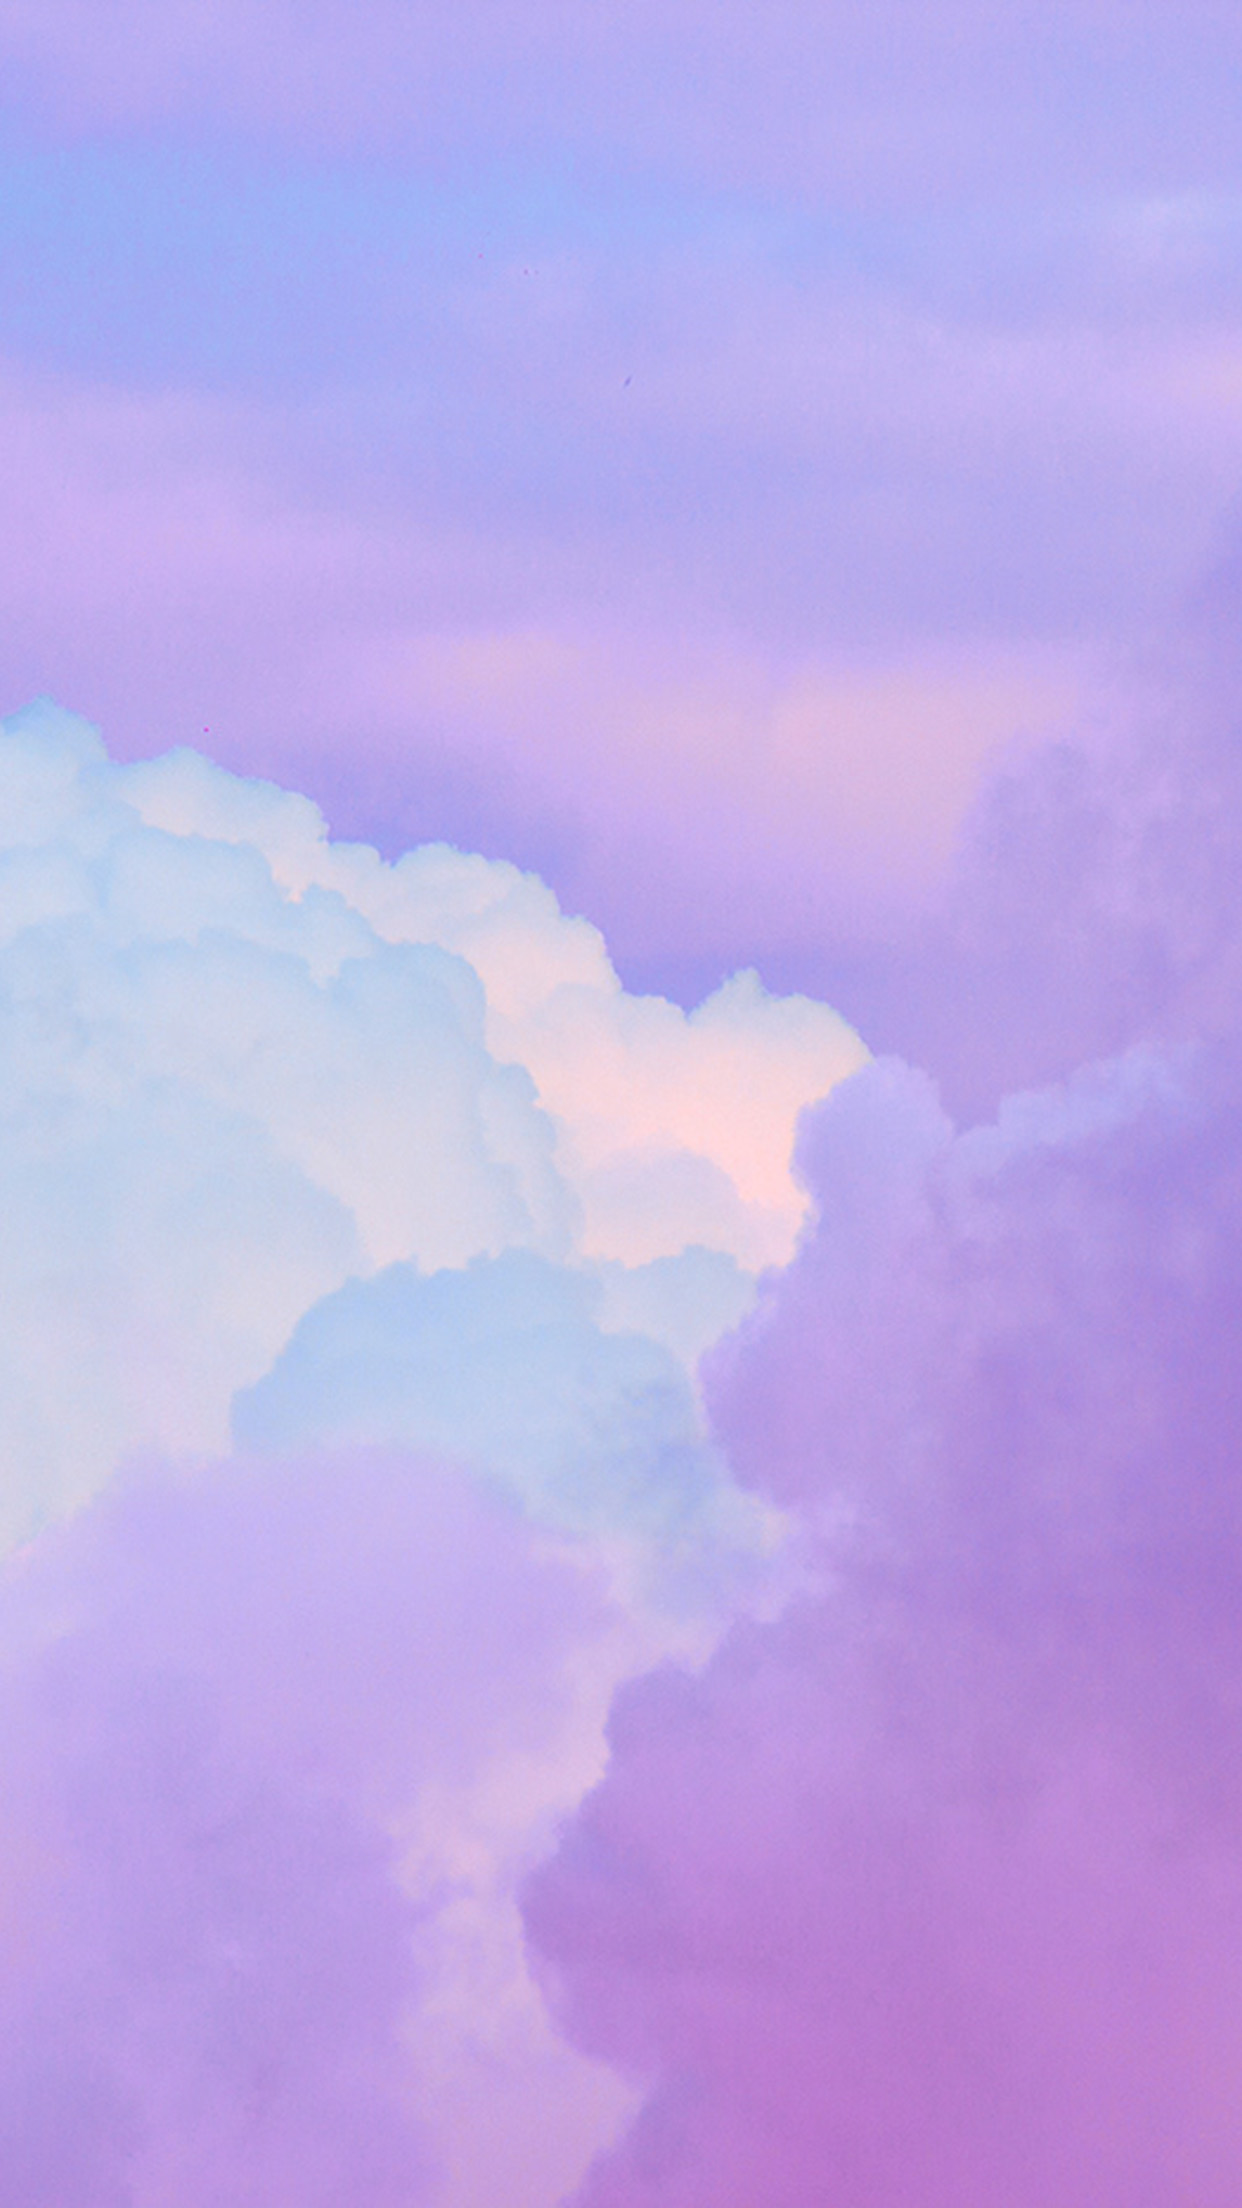 Iphone6papers Com Iphone 6 Wallpaper Bj18 Cloud Sky Purple Art